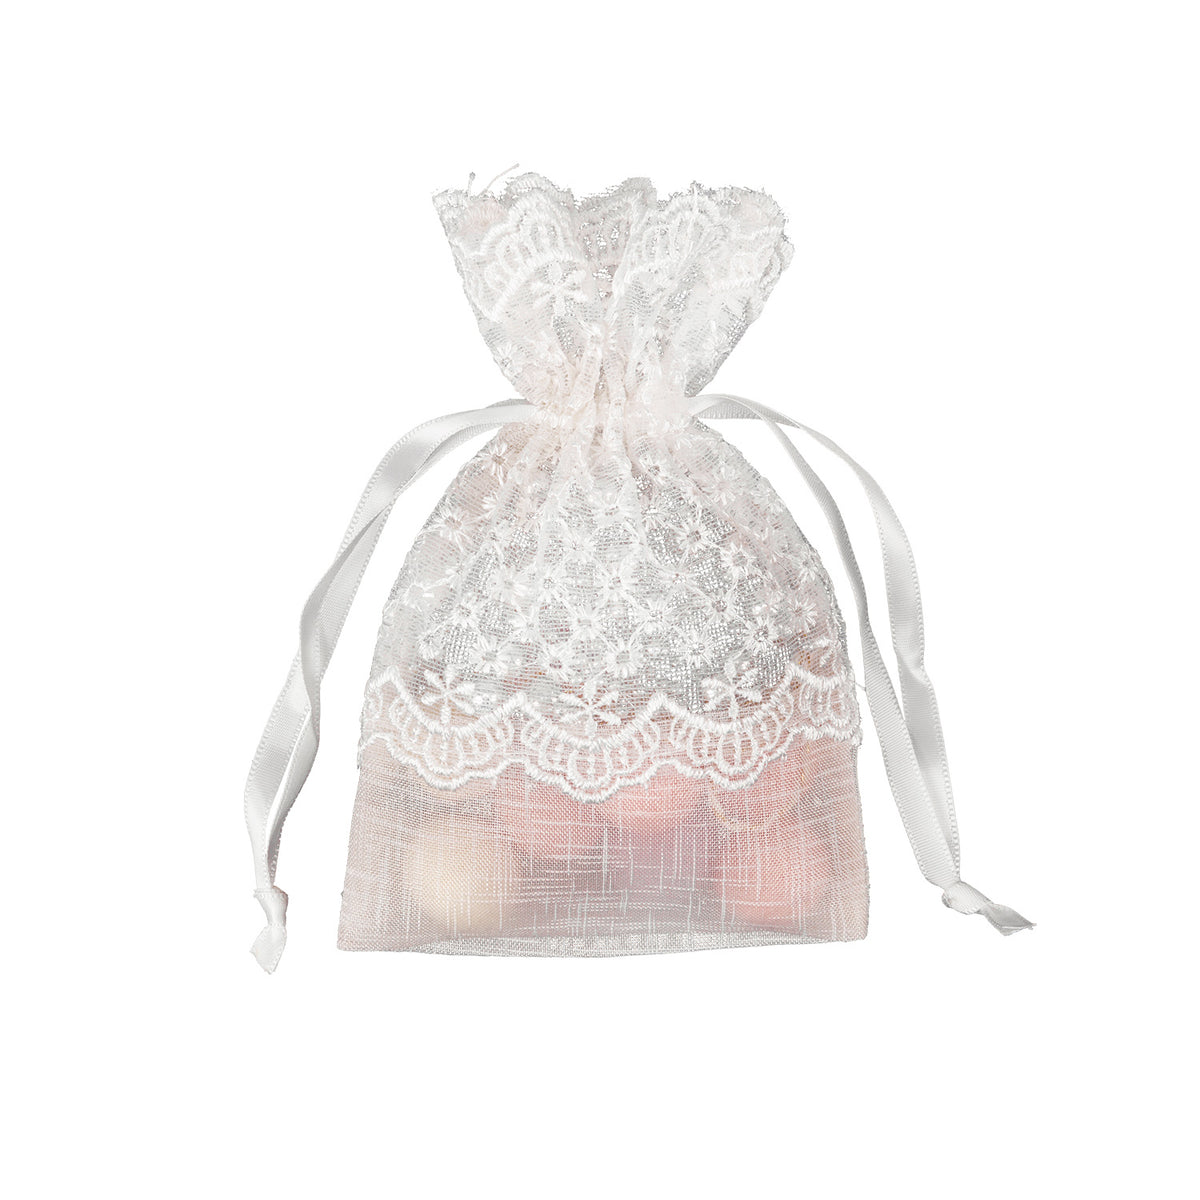 WRAPAHOLIC-Lace-Drawstring-Gift-Bag-4 x 5.5 inch